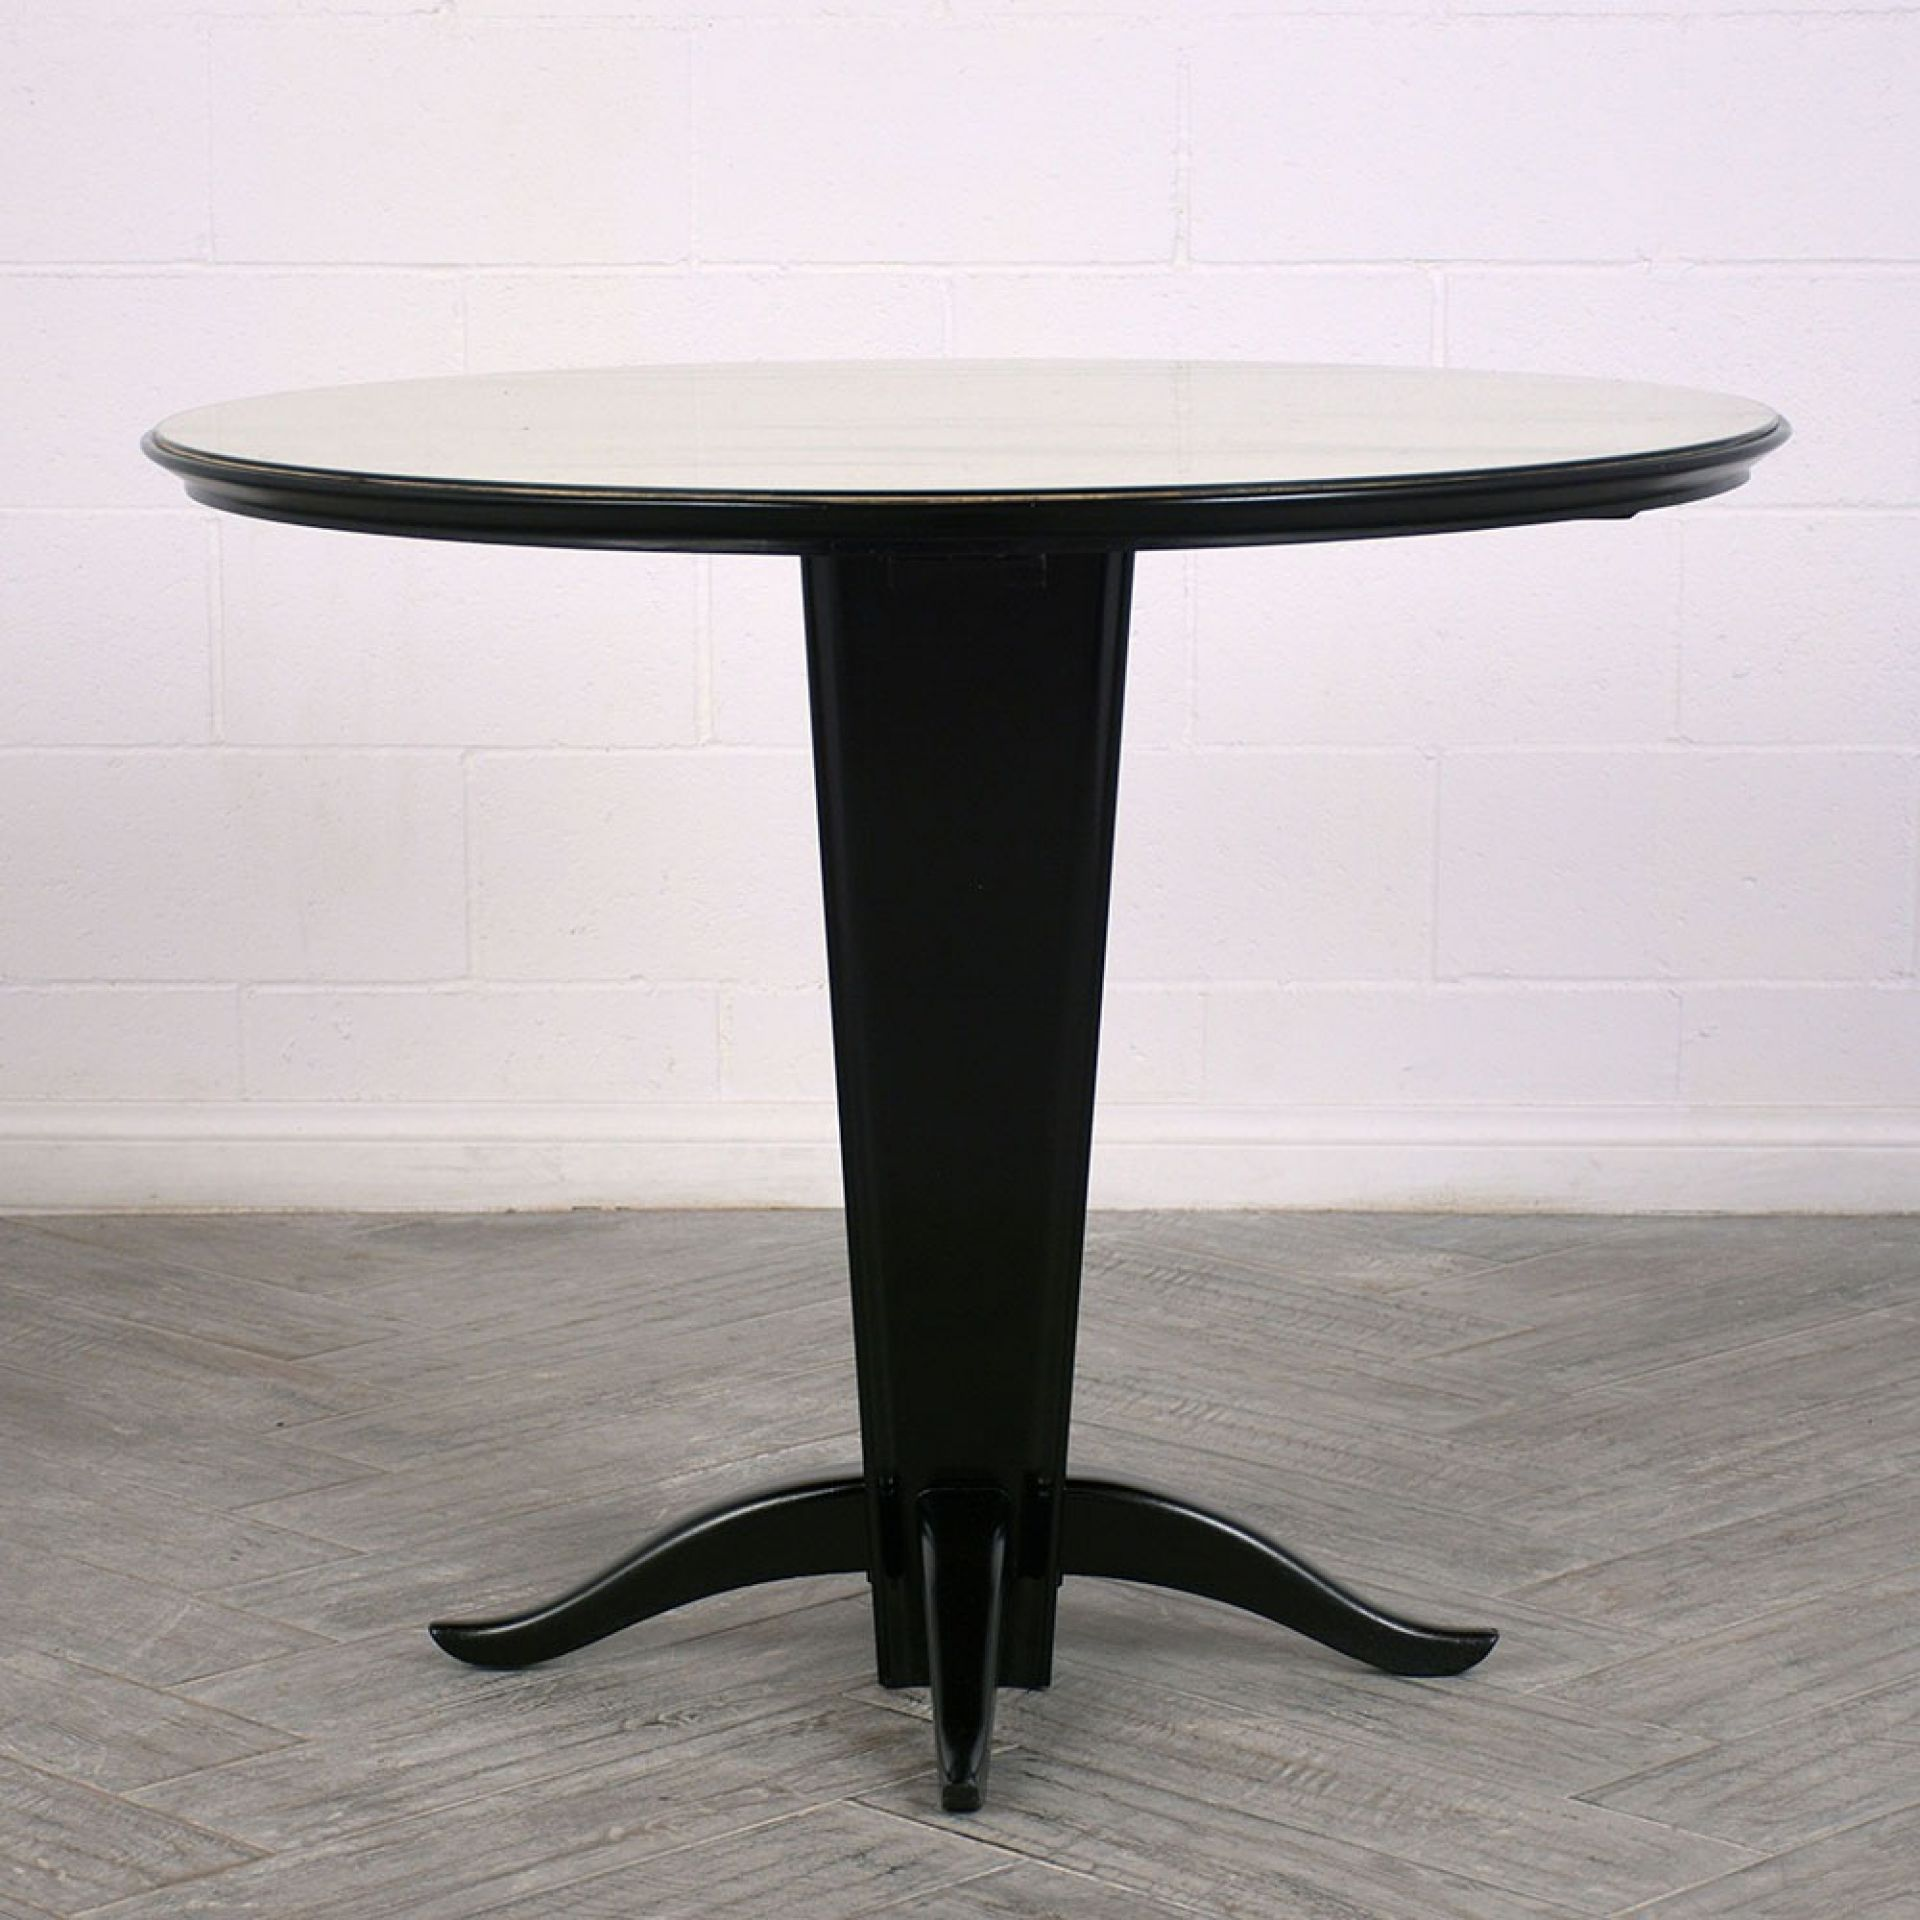 Italian Modern Round Center Table